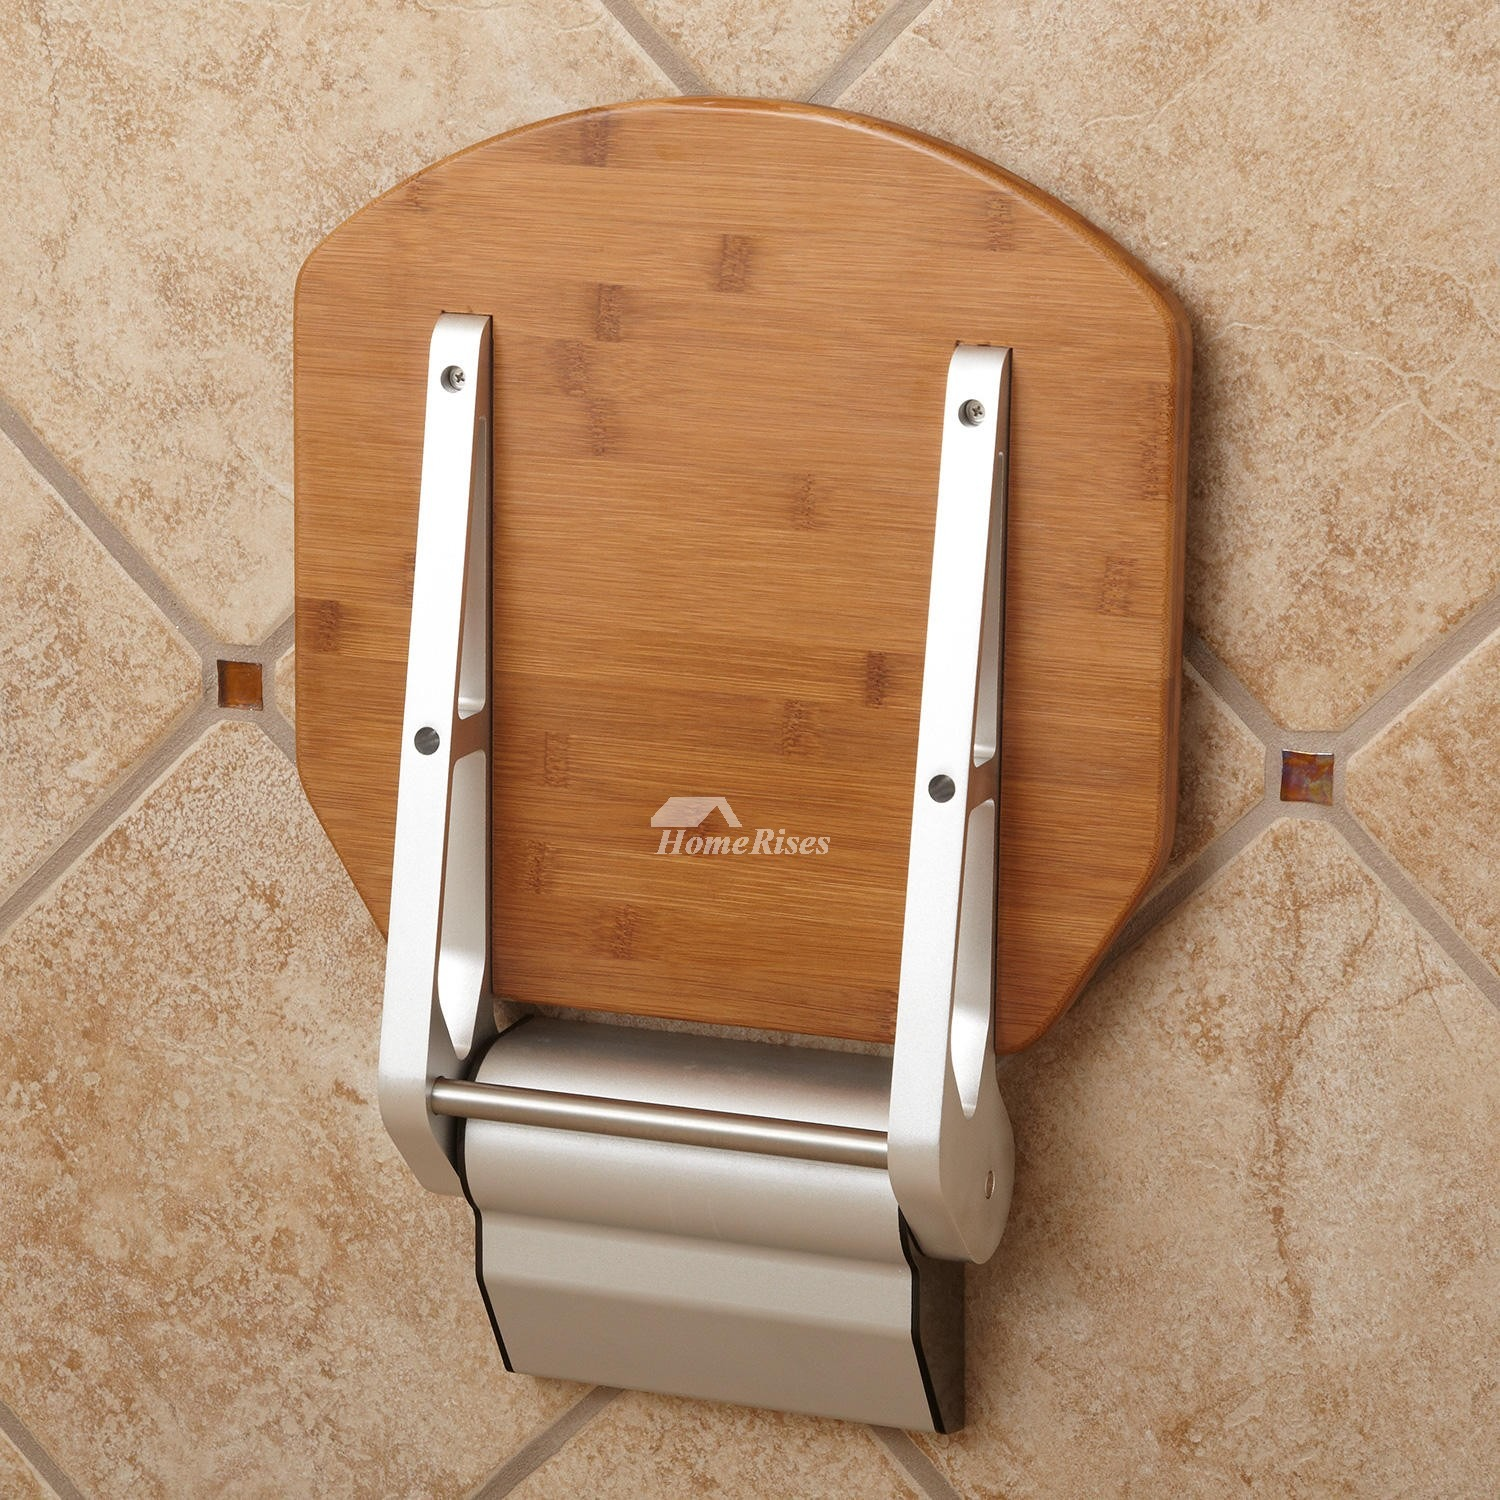 Bamboo | Teak Wood Wall Mounted Folding Shower Seat